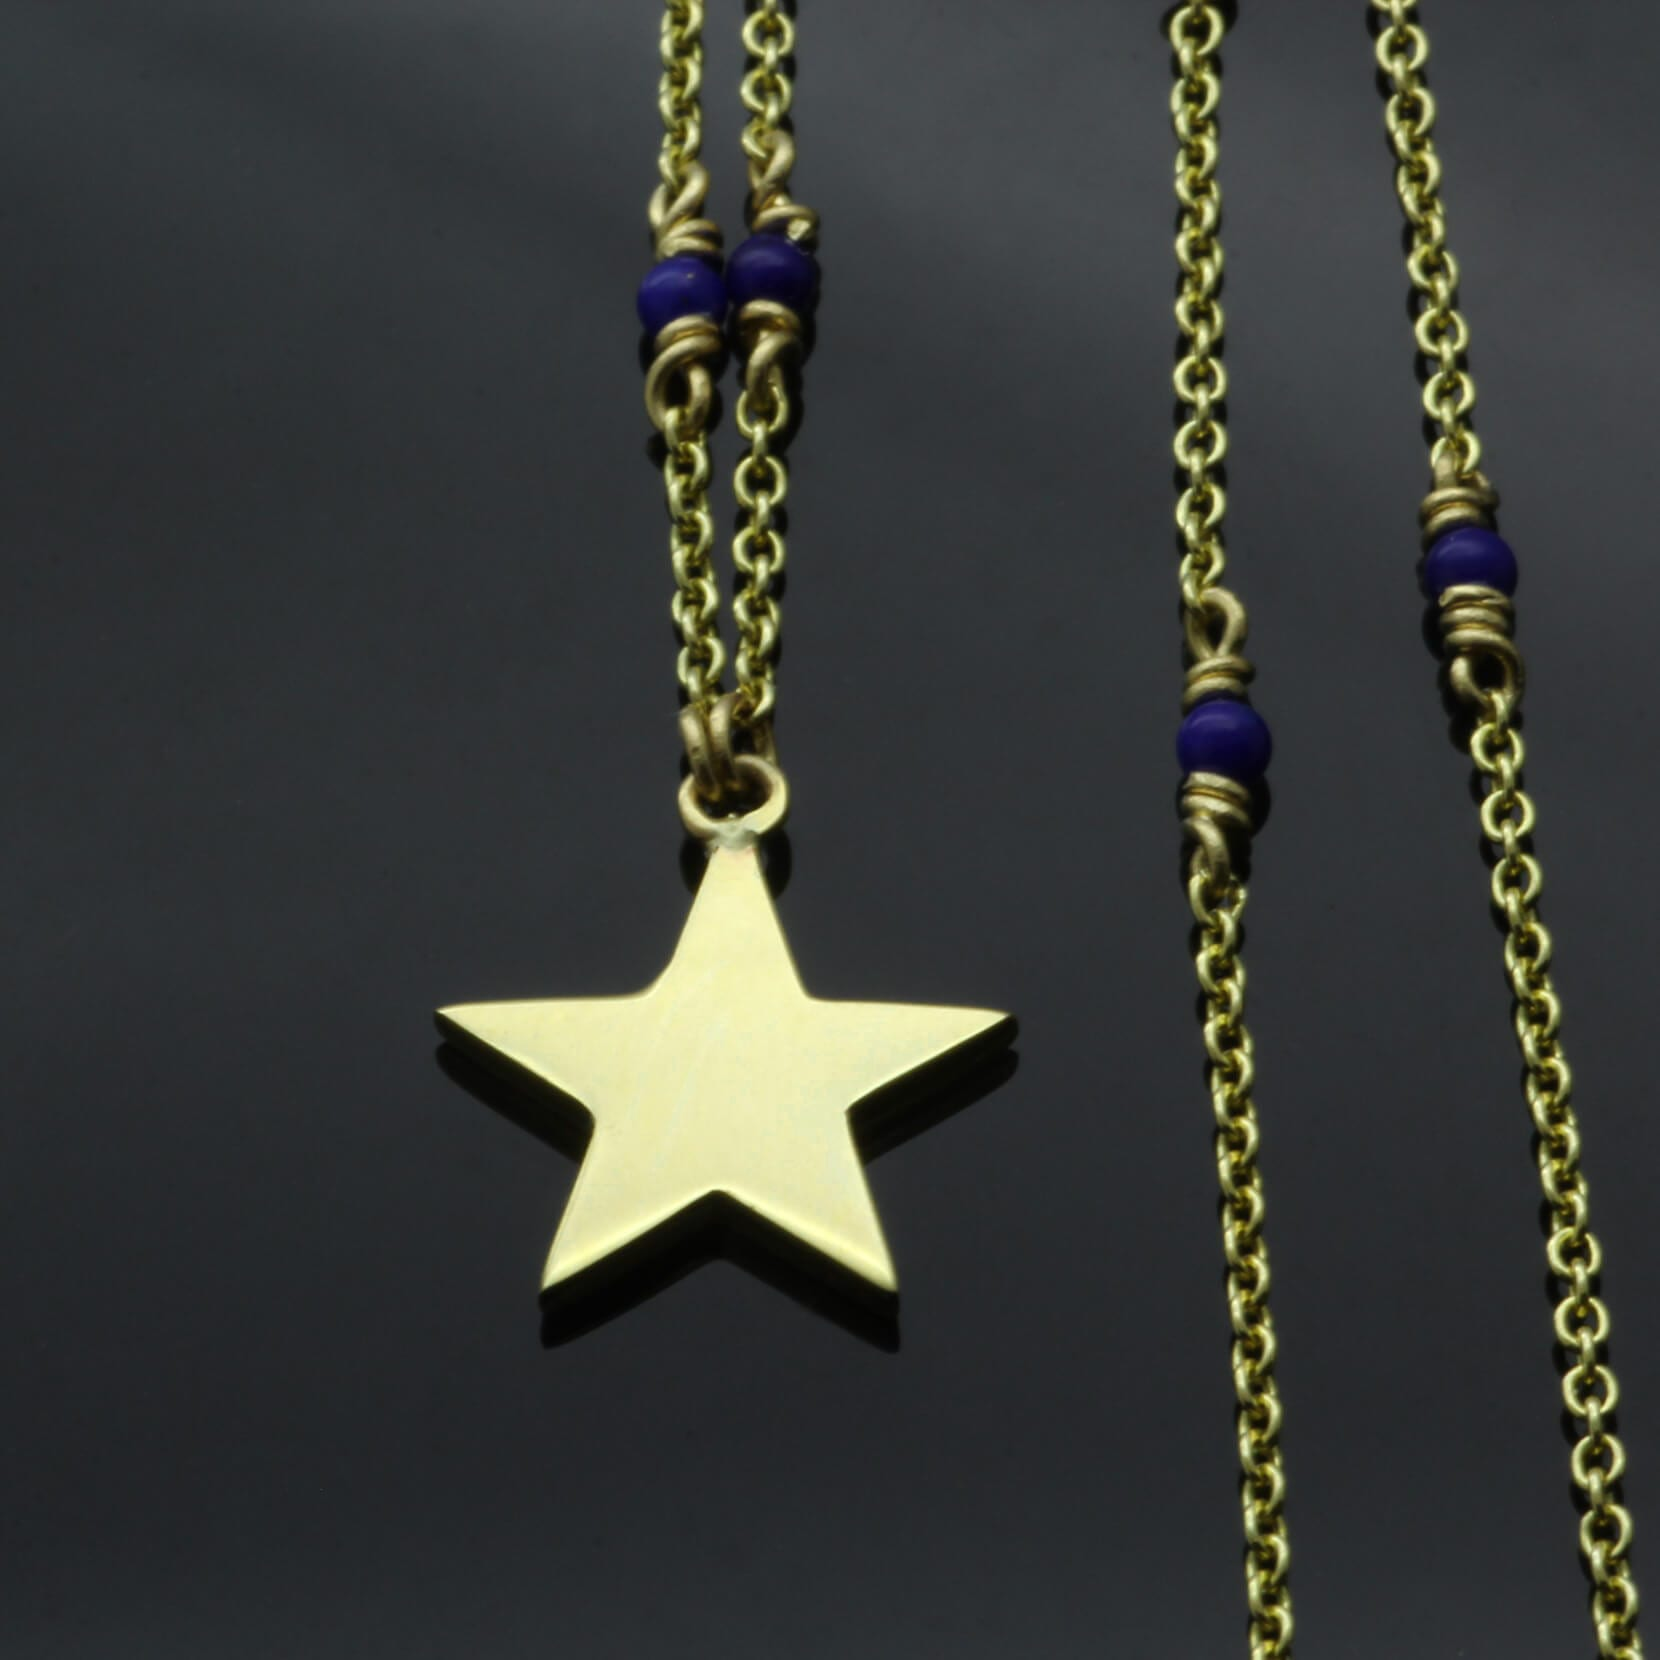 Lapis Lazuli bead 18ct yellow gold necklace with handmade star charm